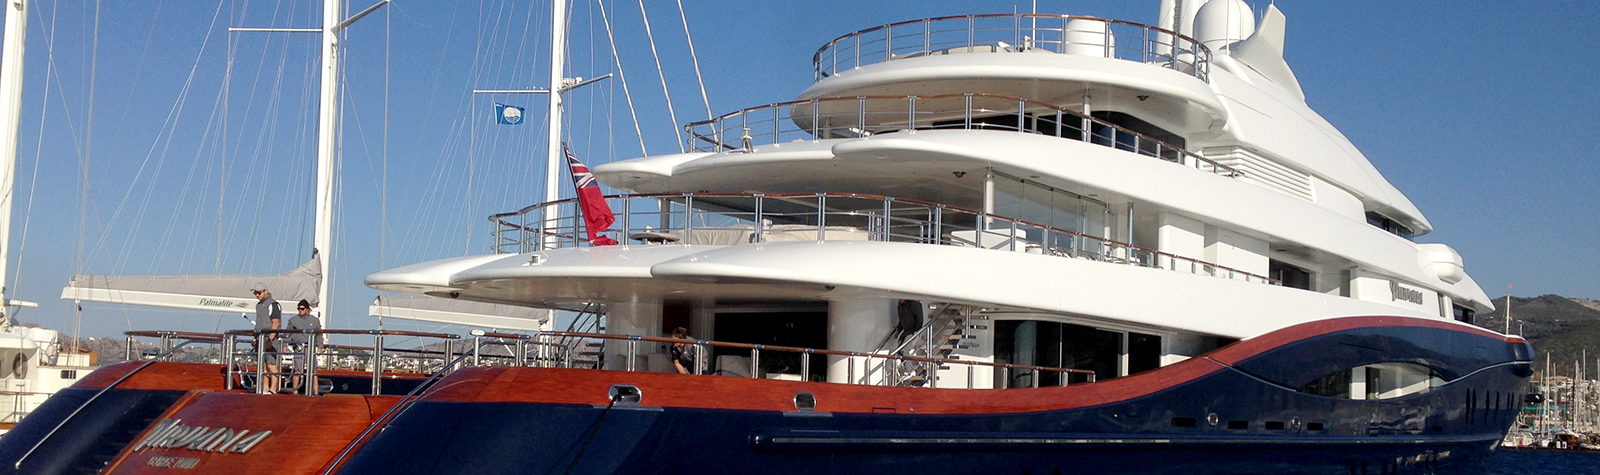 M/Y Nirvana visited Bodrum and Marmaris first time